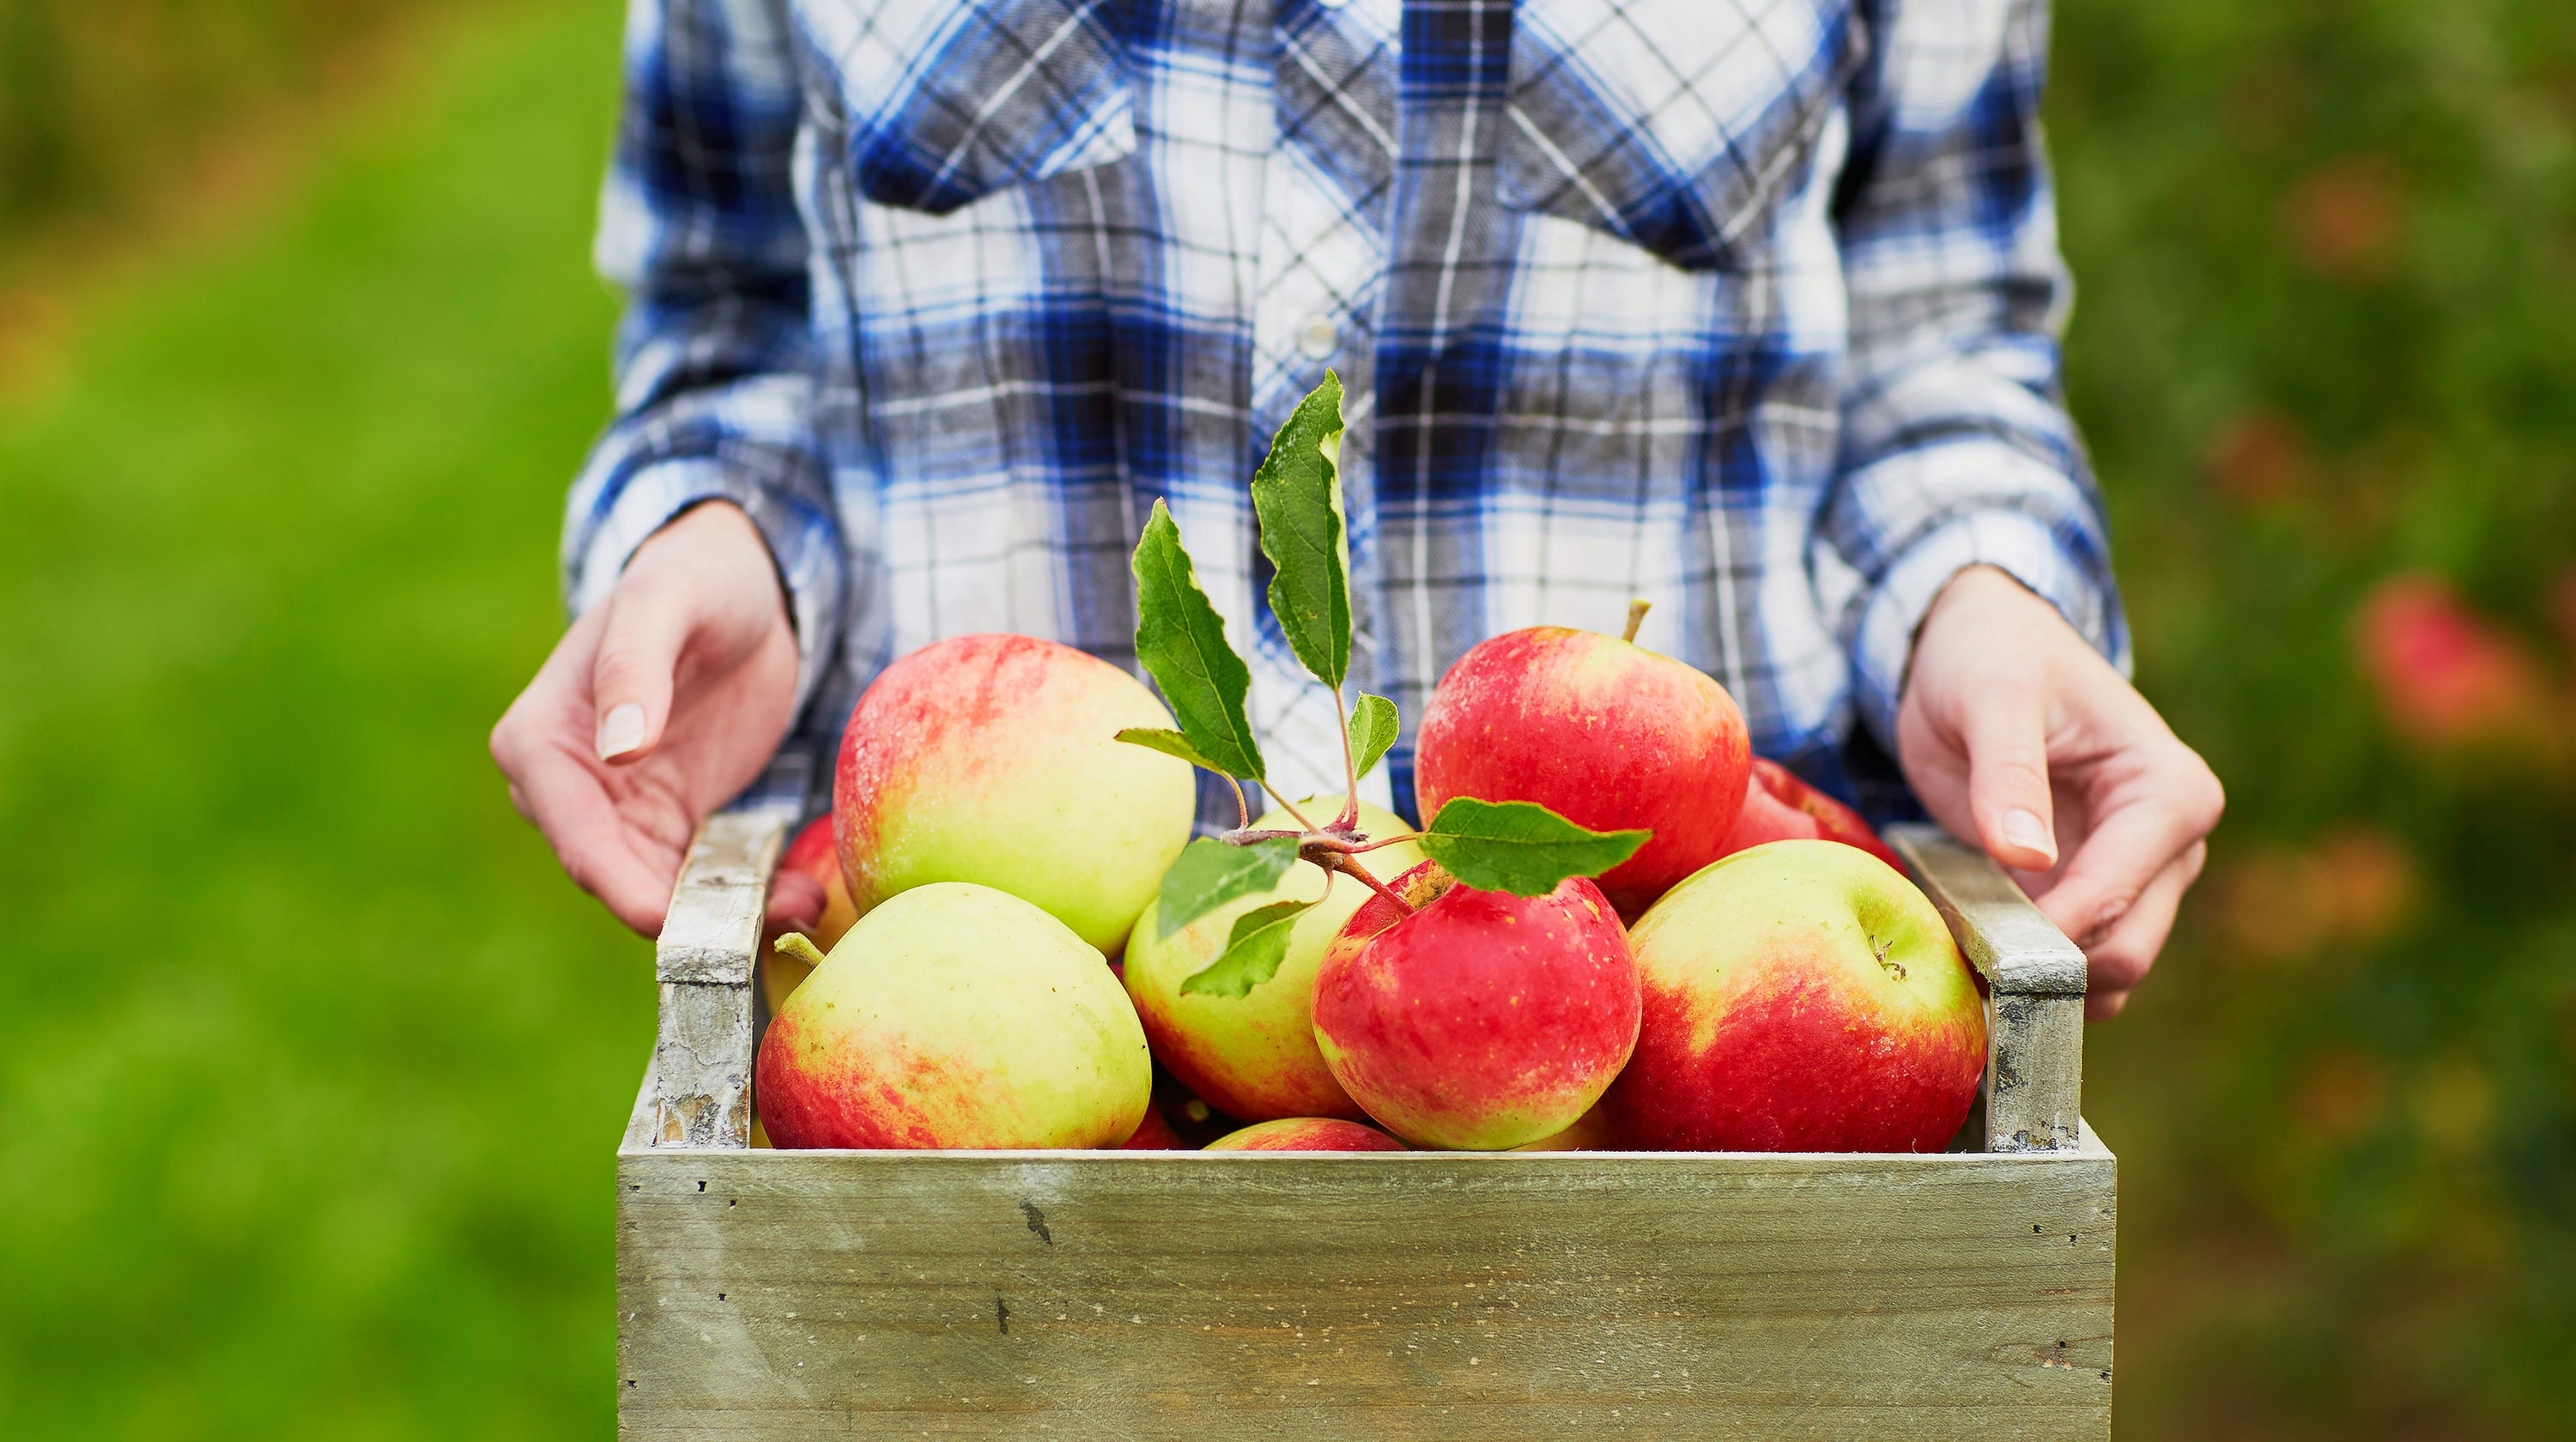 Plymouth Orchard and Cider Mill won't open this season, cites COVID-19